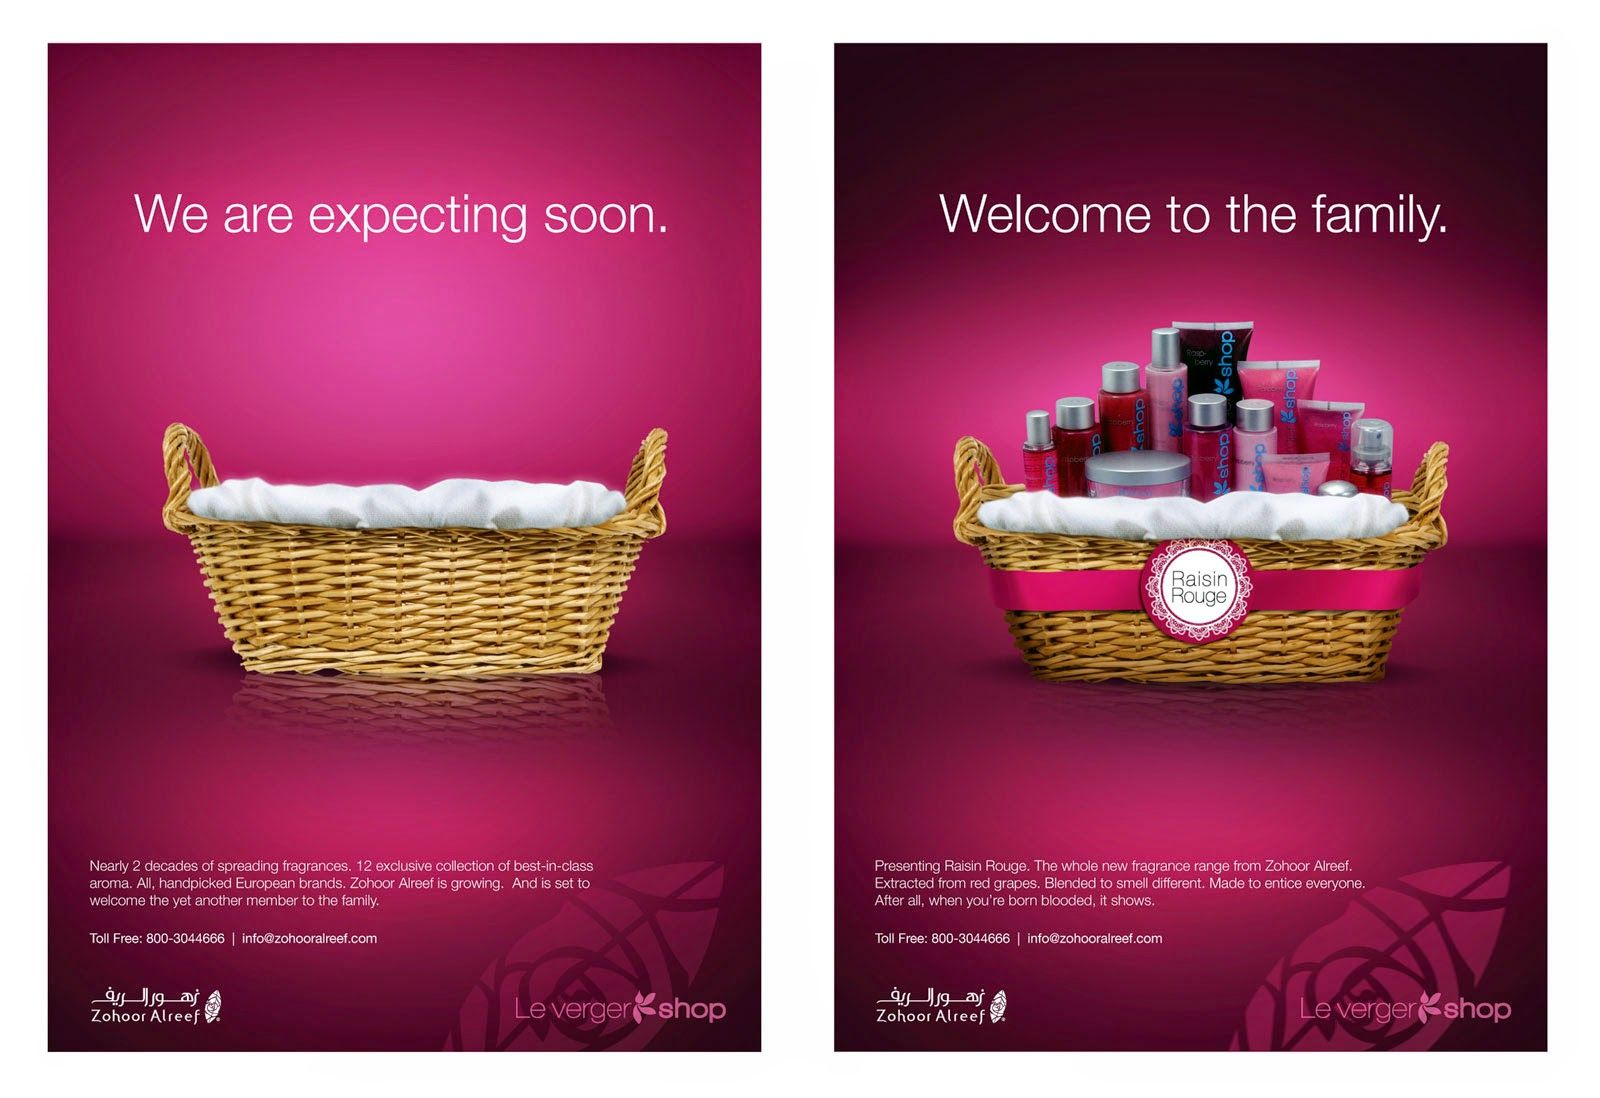 5 examples of internet teaser campaigns.